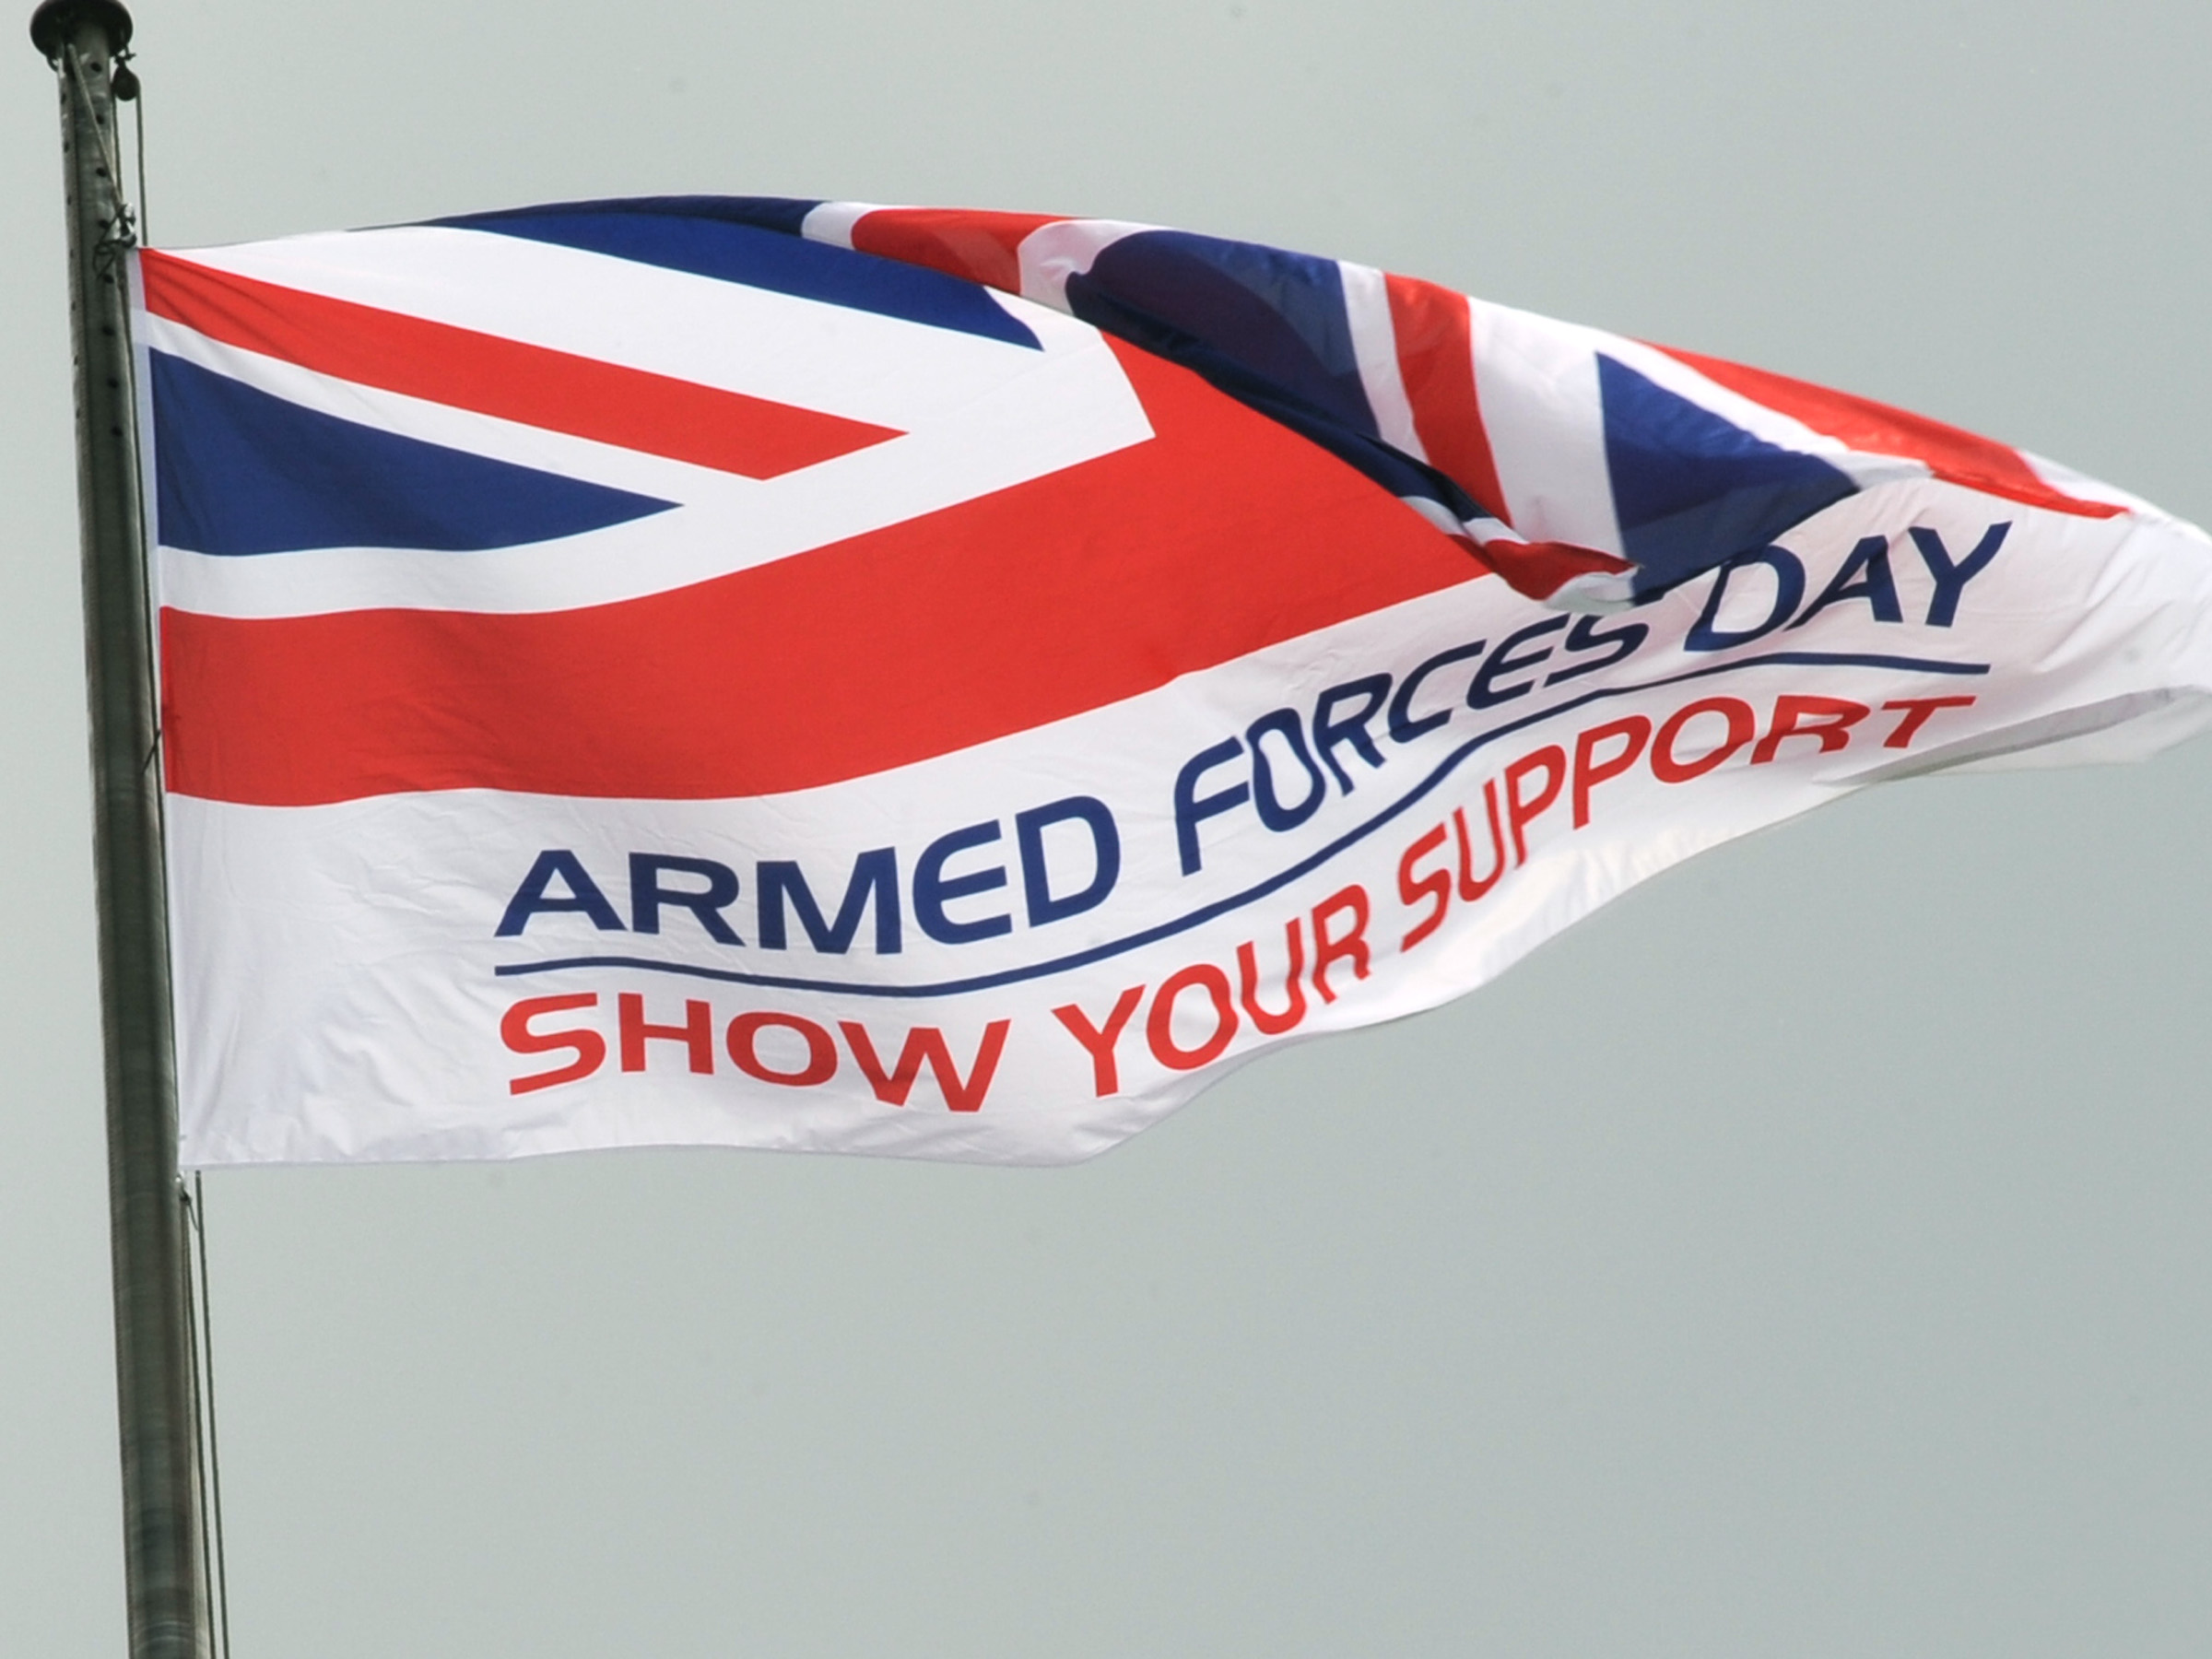 How will you be celebrating Armed Forces Day?